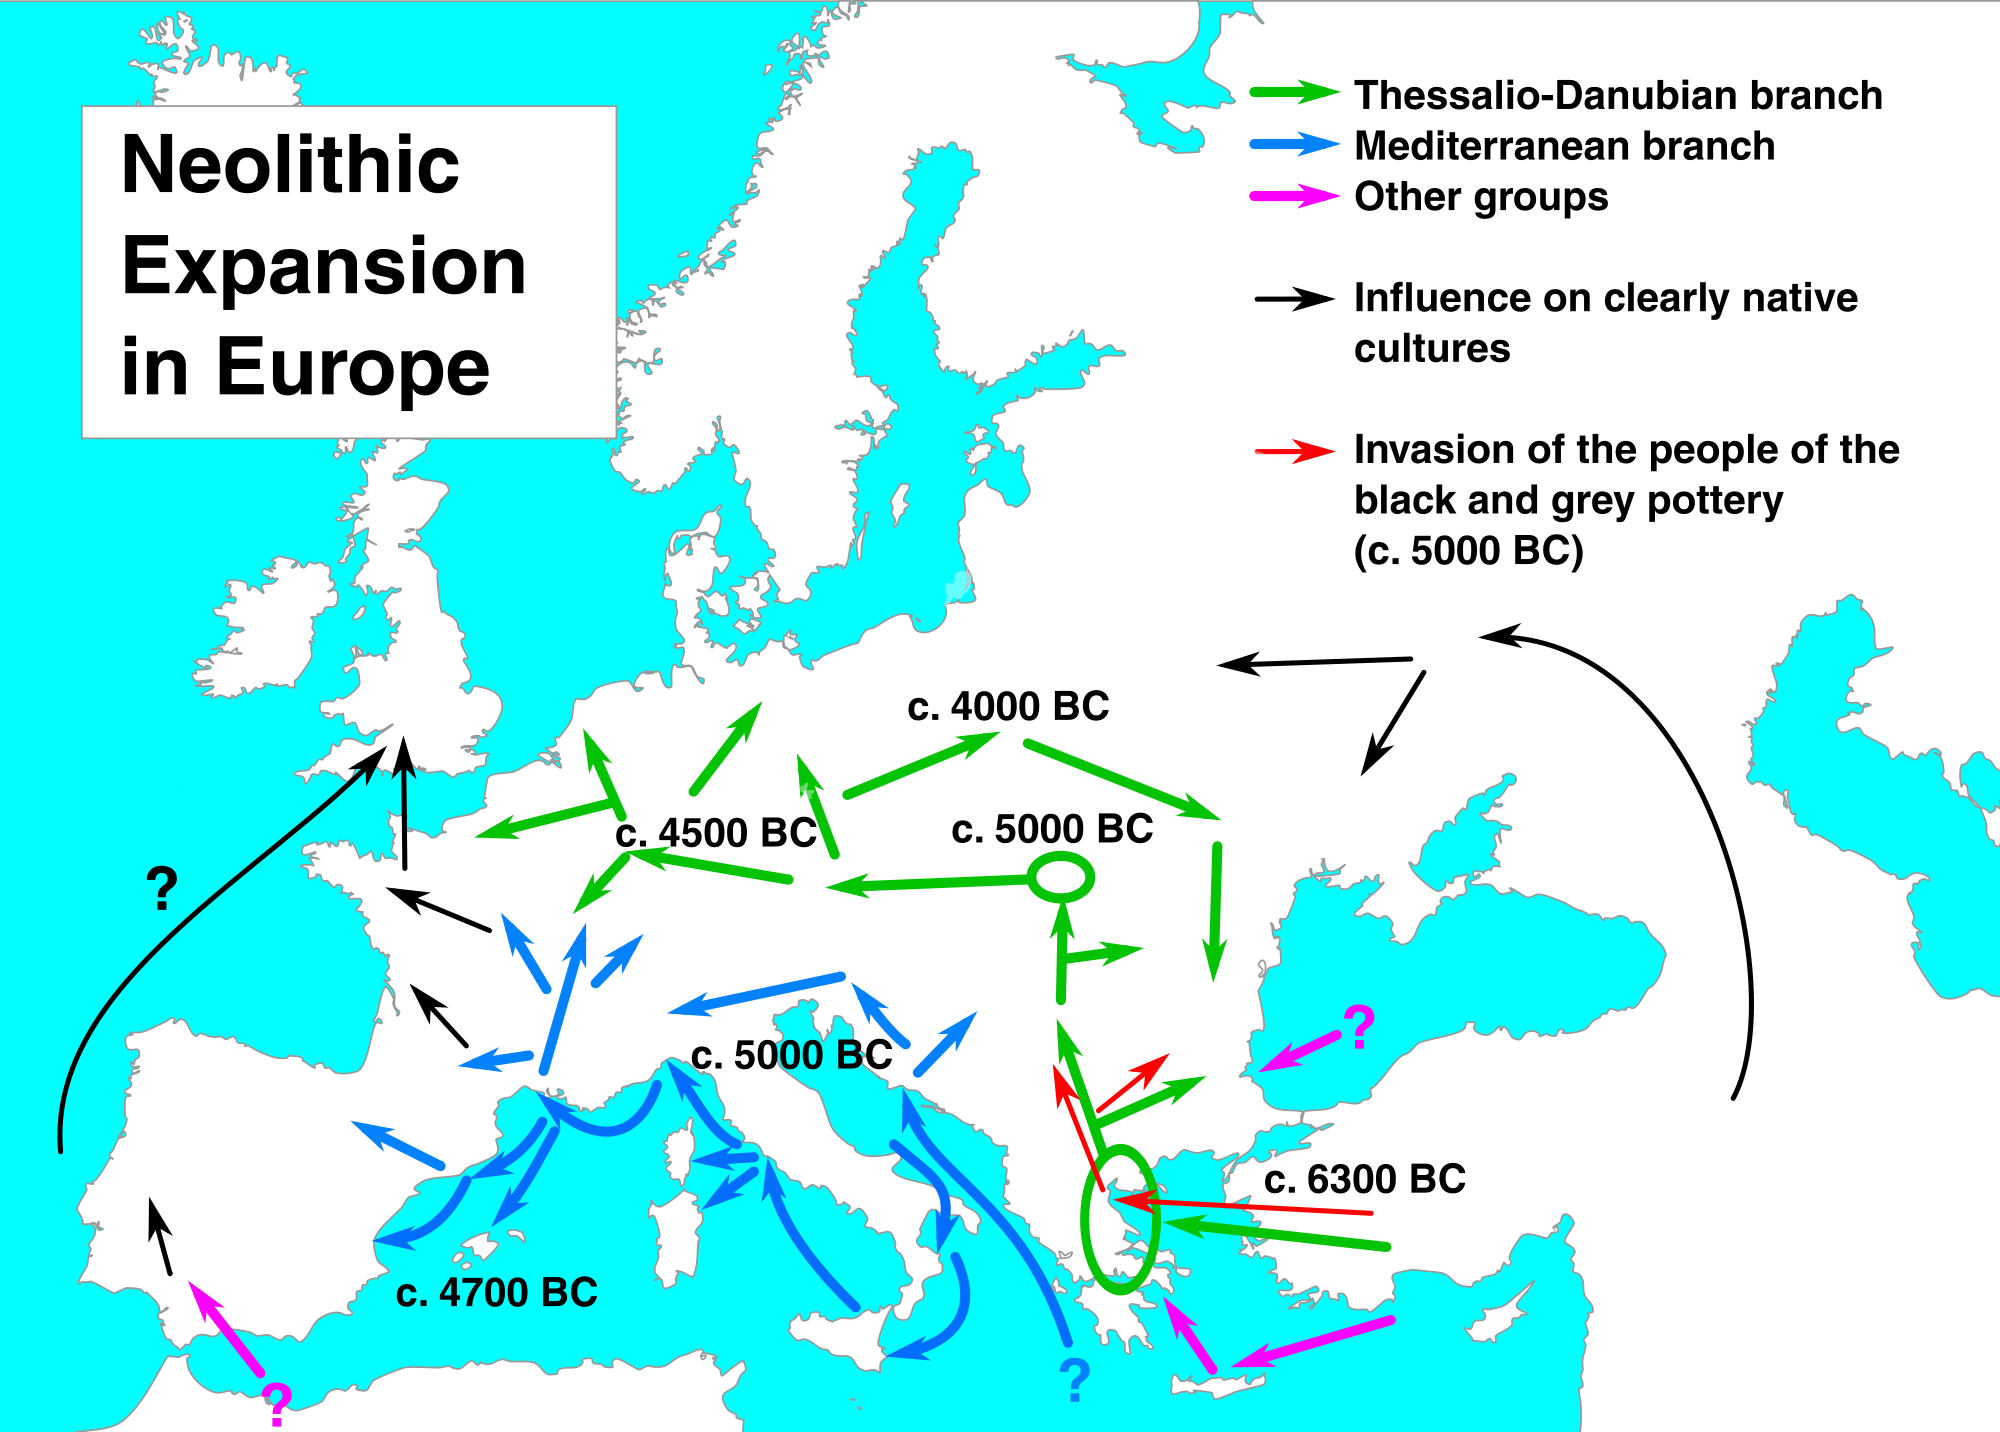 Neolithic expansion in Europe 6300-4000 BC